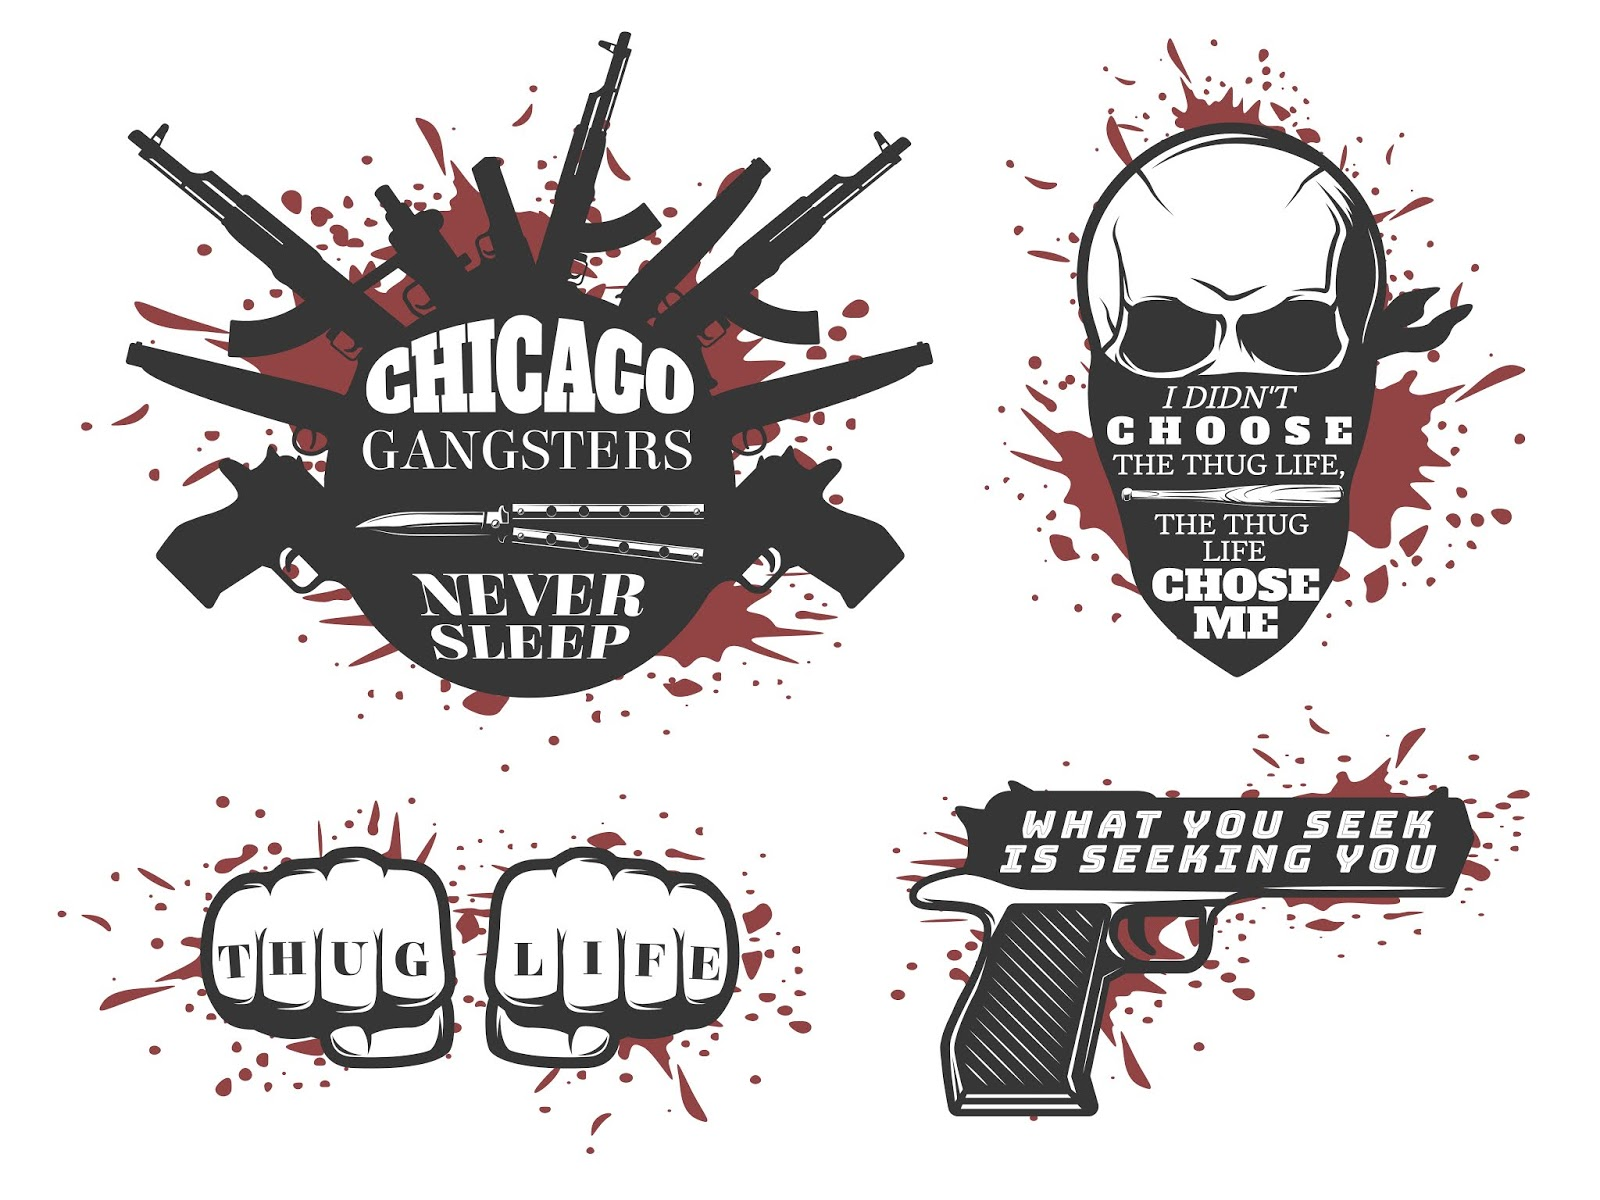 Chicago Gangster Quotes Set Free Download Vector CDR, AI, EPS and PNG Formats